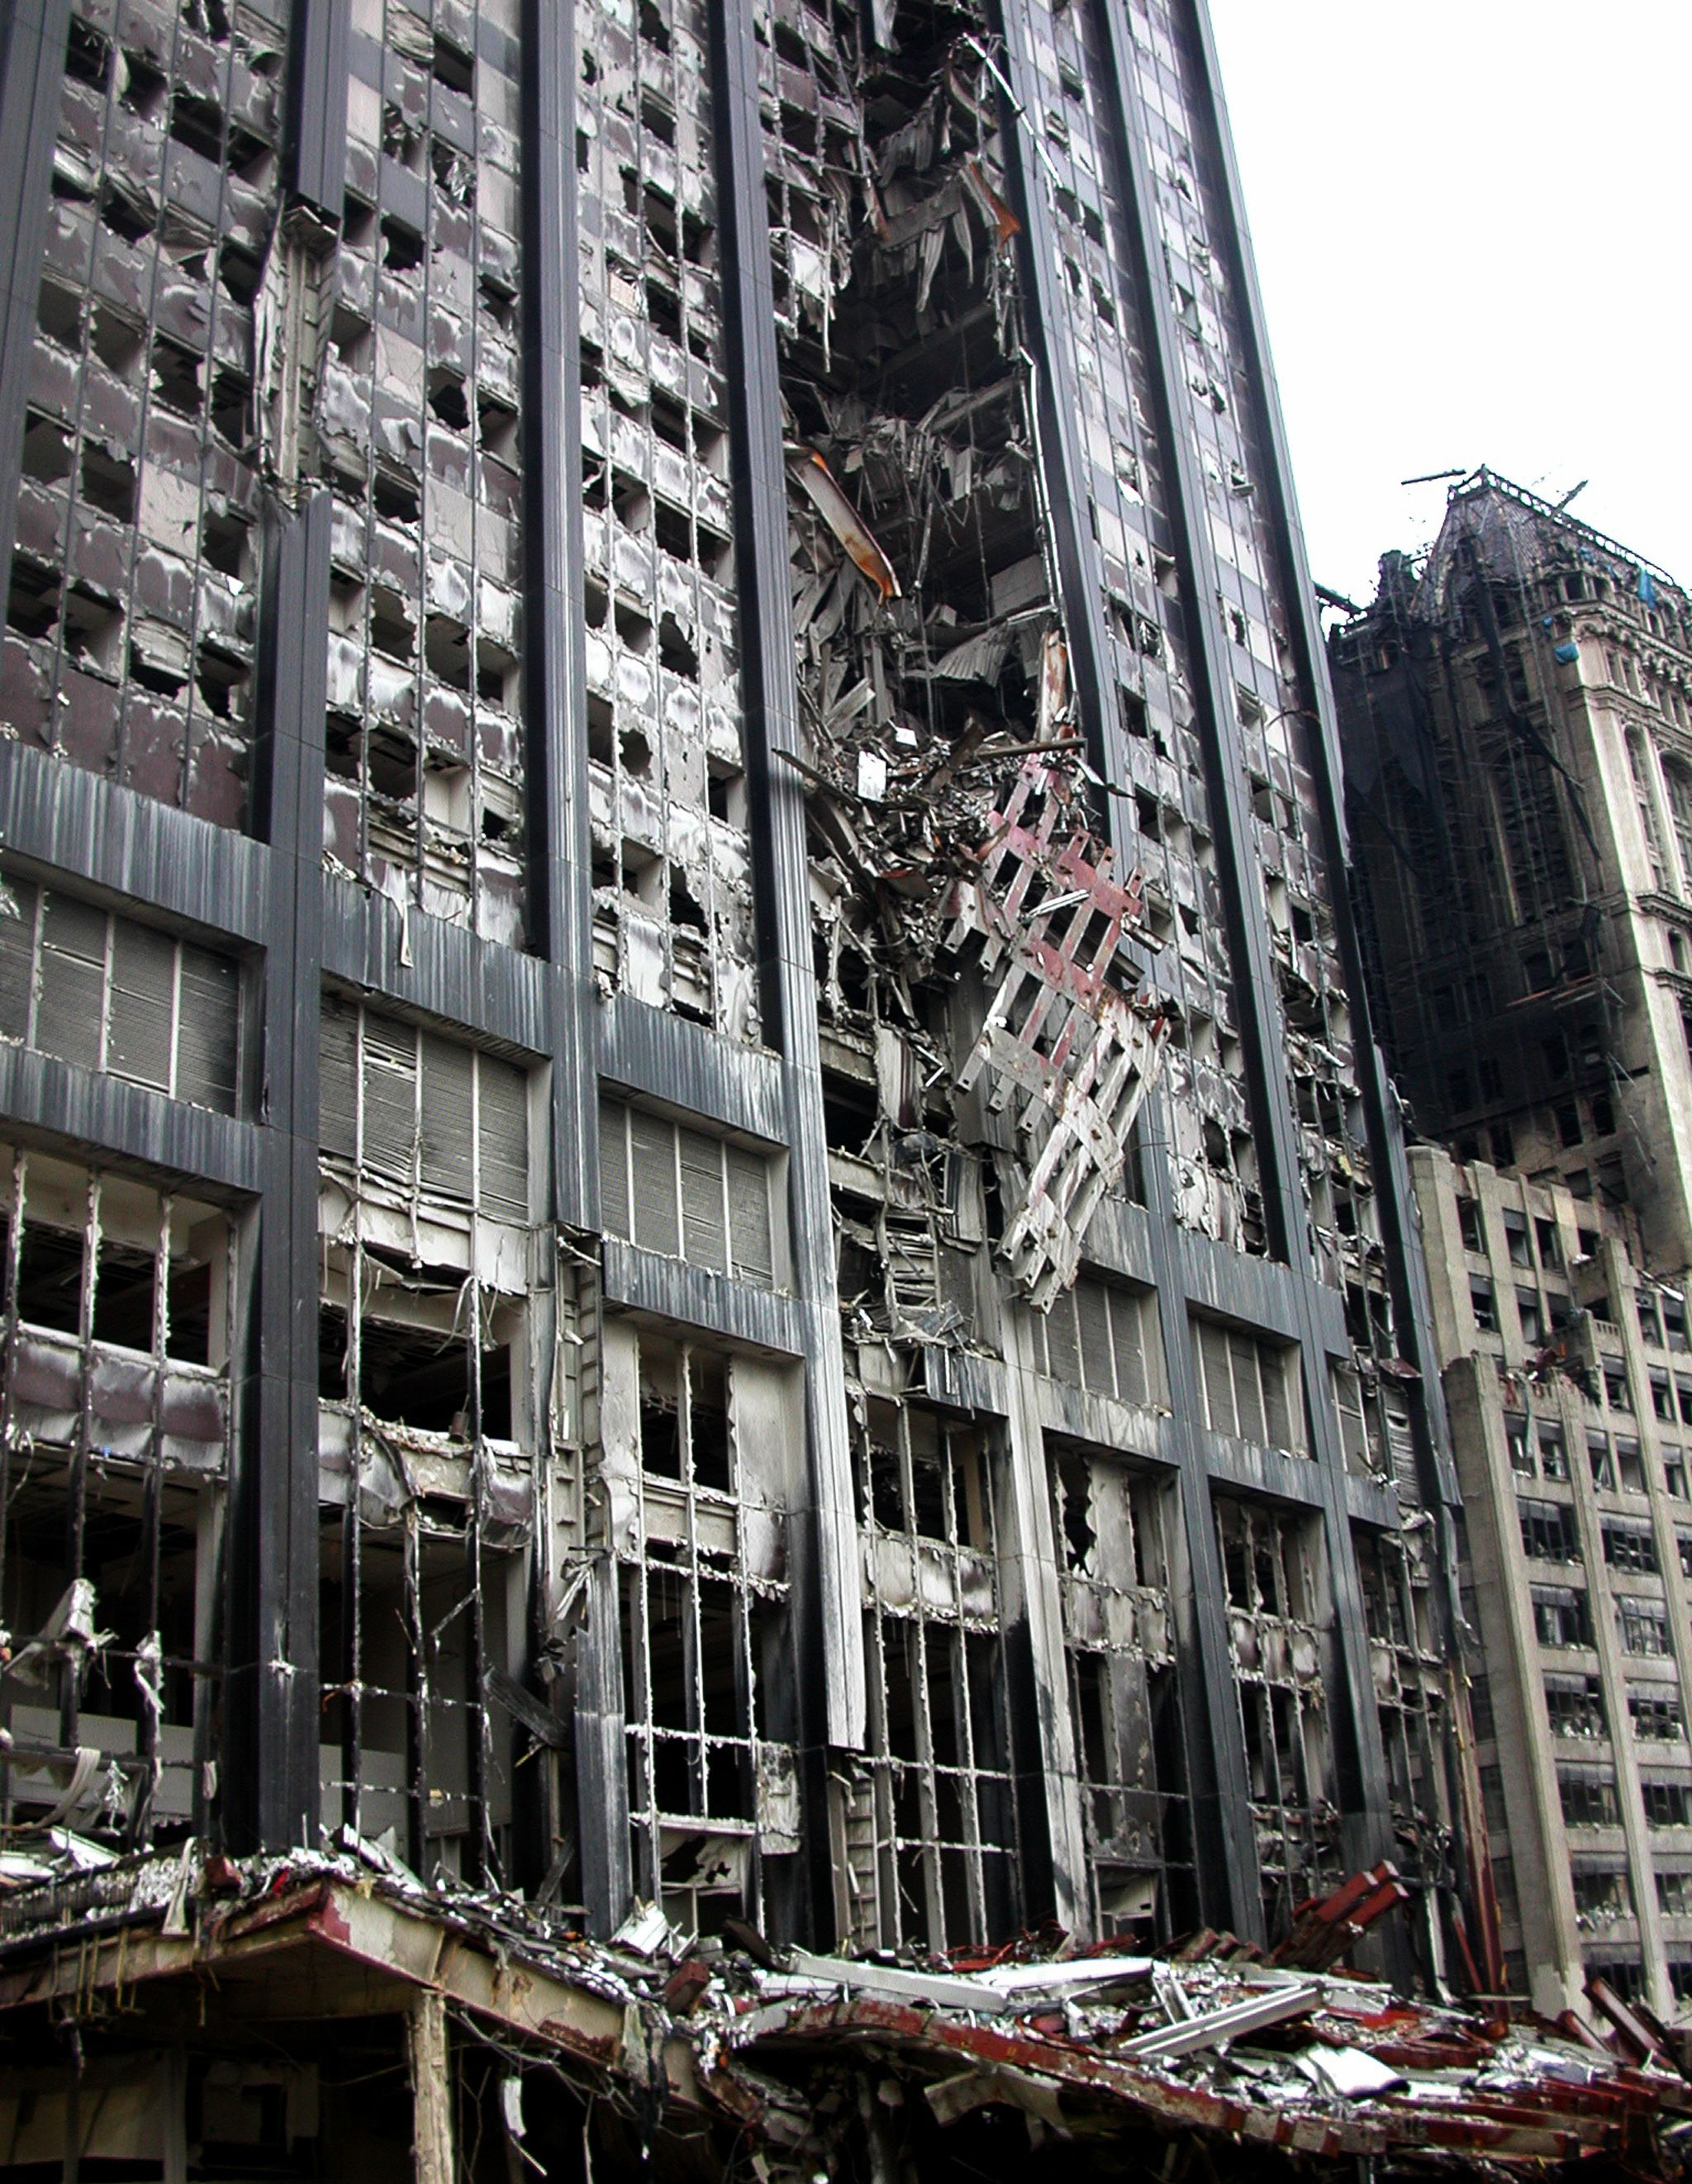 Is writing about 9/11 in a cause and effect essay inapropriate?